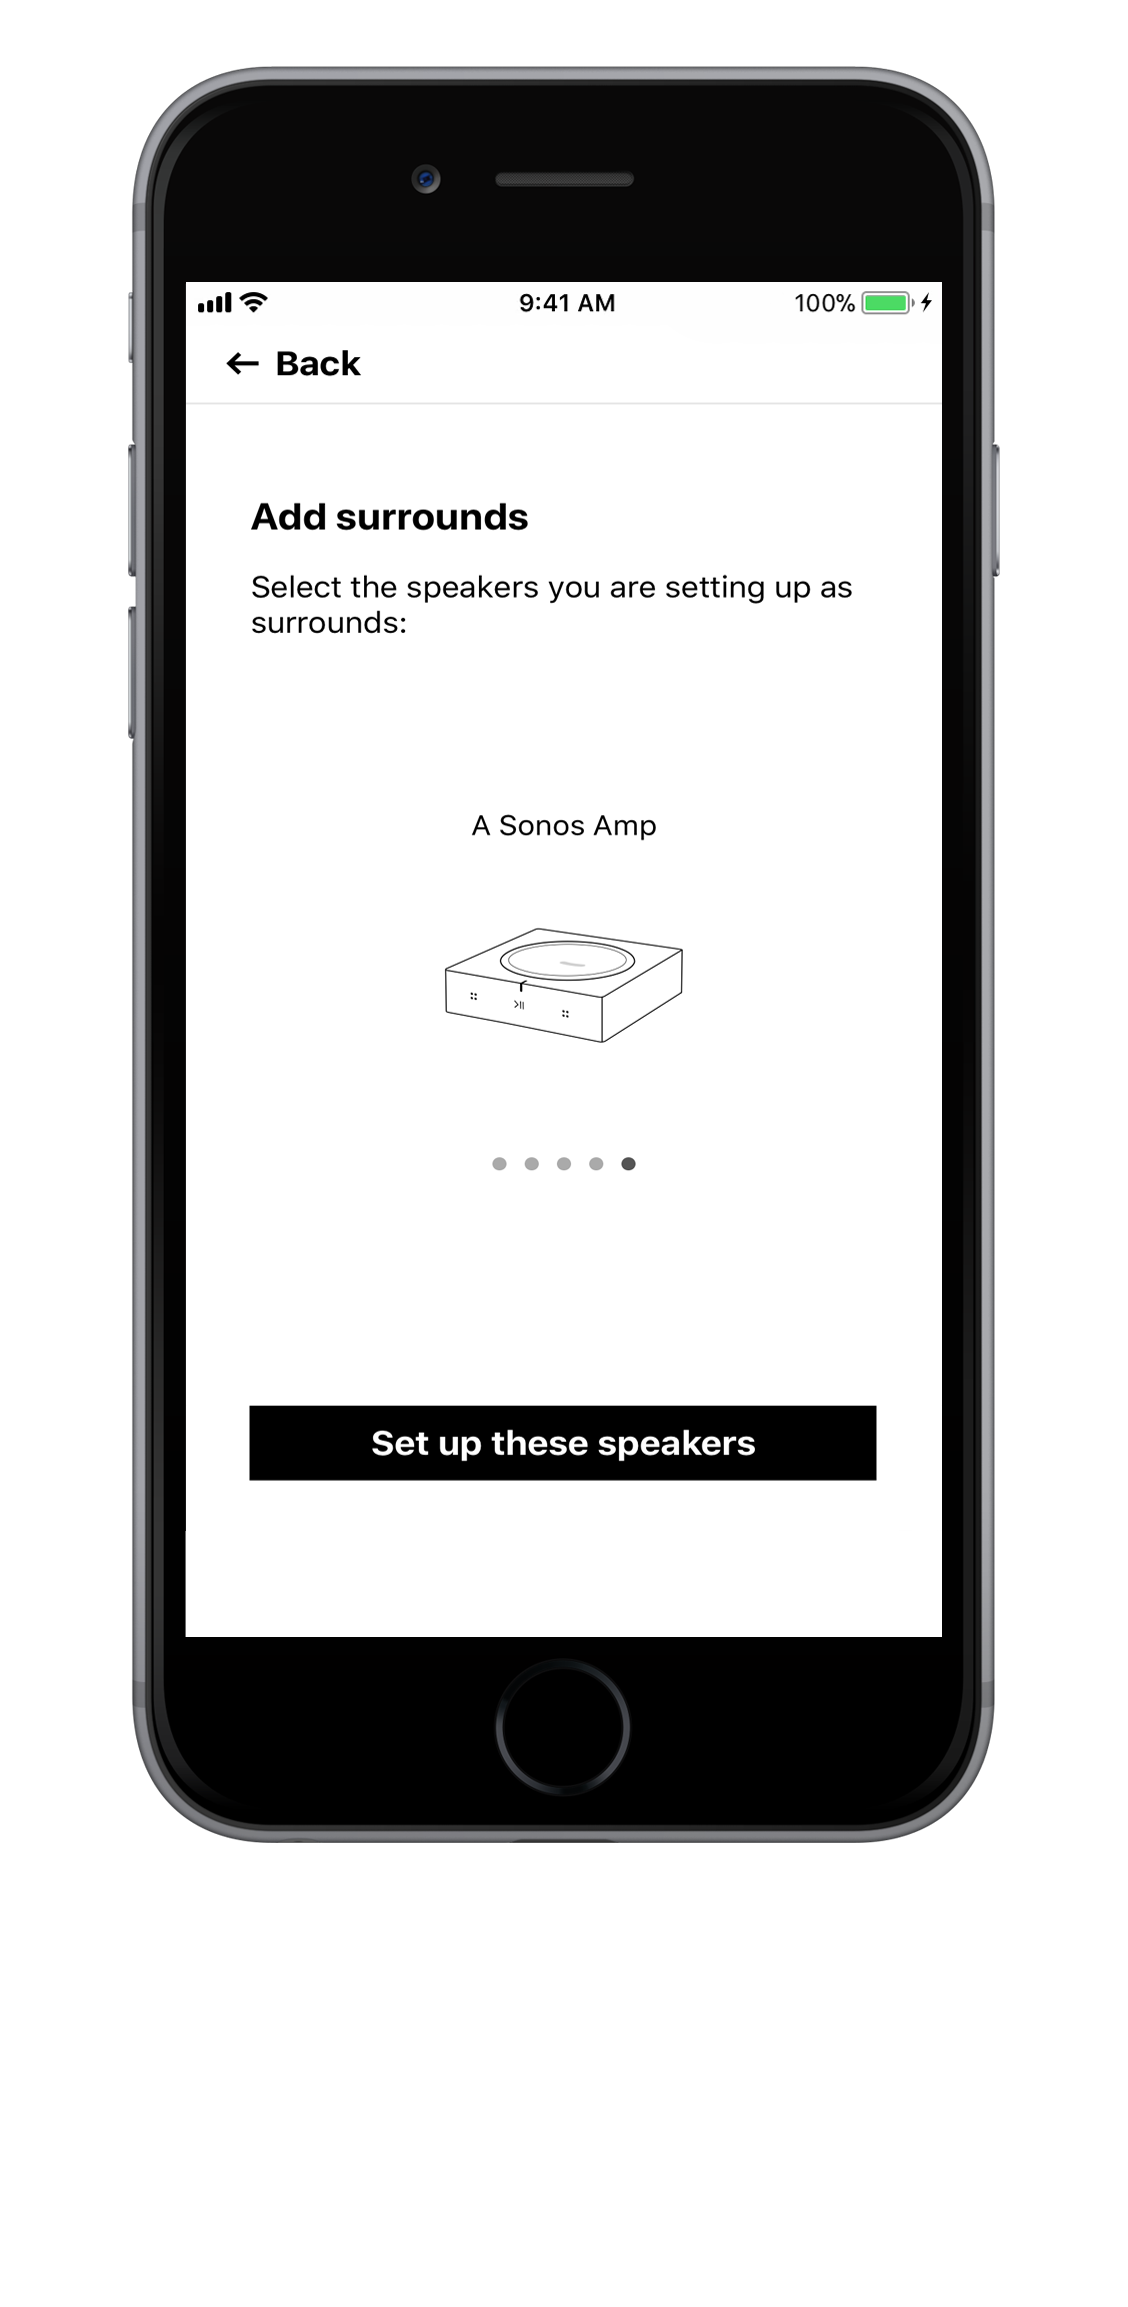 Setting up an Amp or Connect:Amp as surround speakers | Sonos